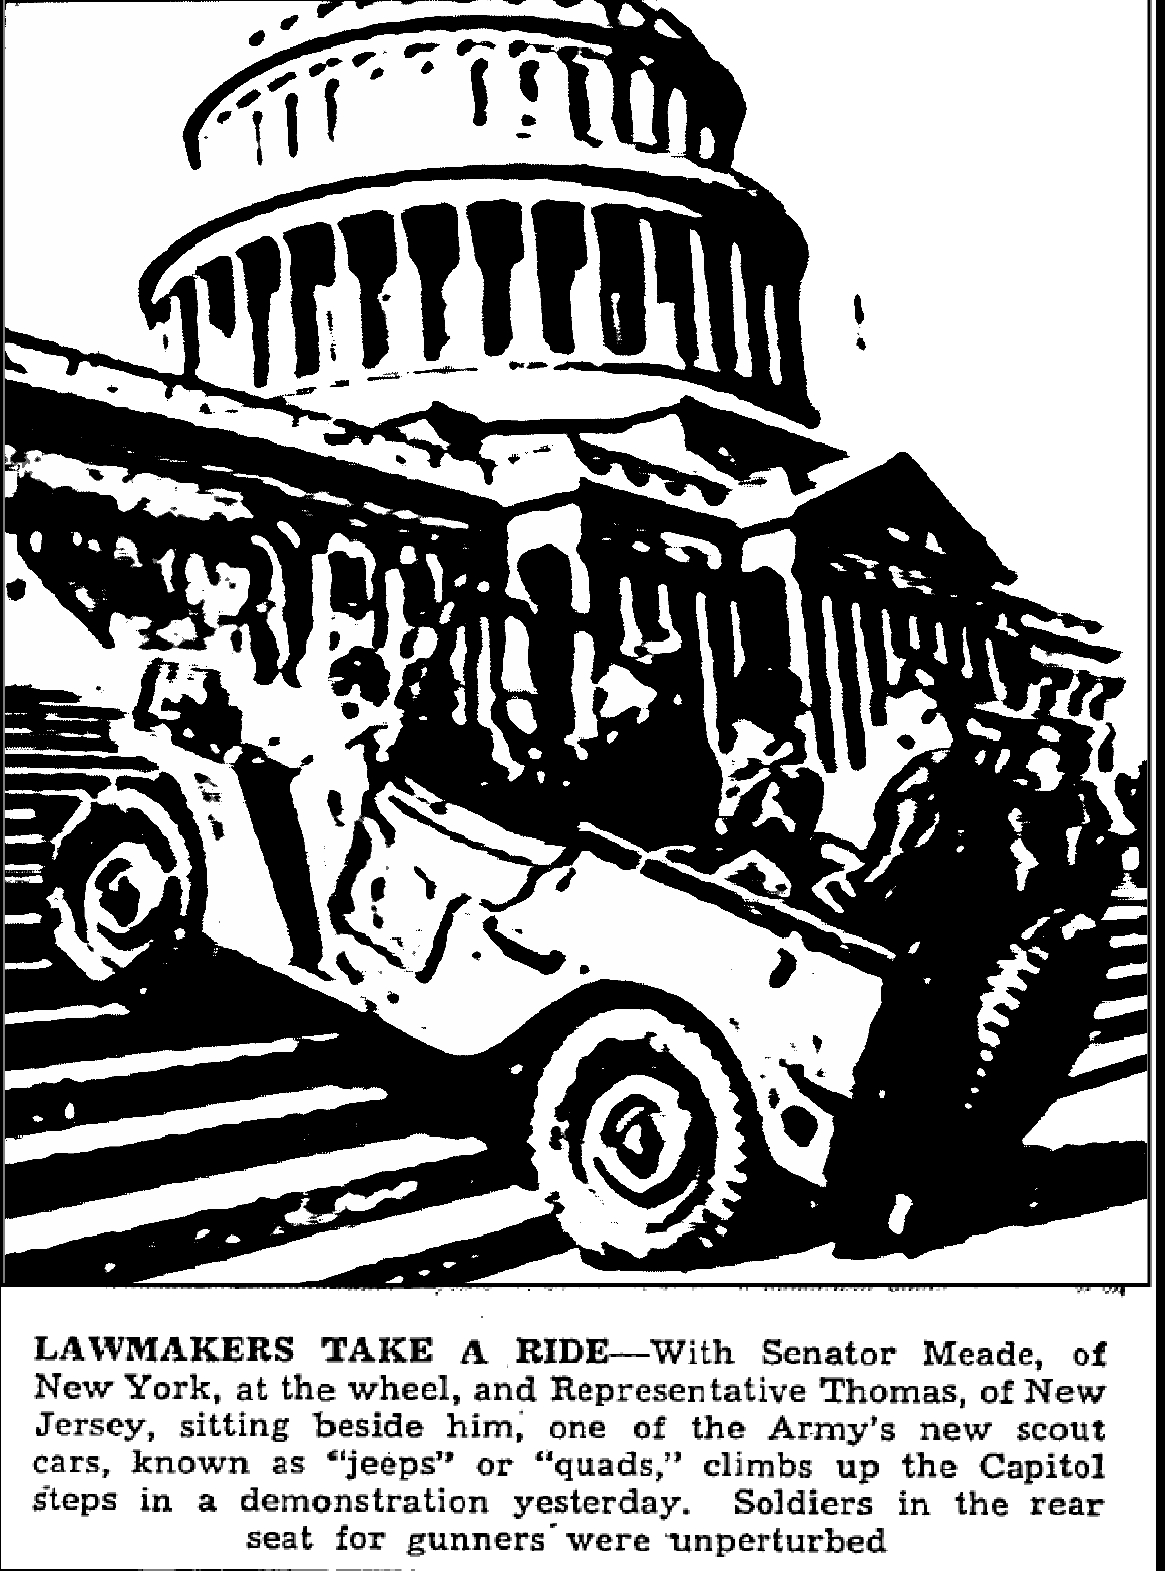 willys mb wikimili the free encyclopedia 1948 Ford Sedan Delivery in the early 1940s willys would stage publicity events showing off their ma s stair climbing capabilities for the war effort archived